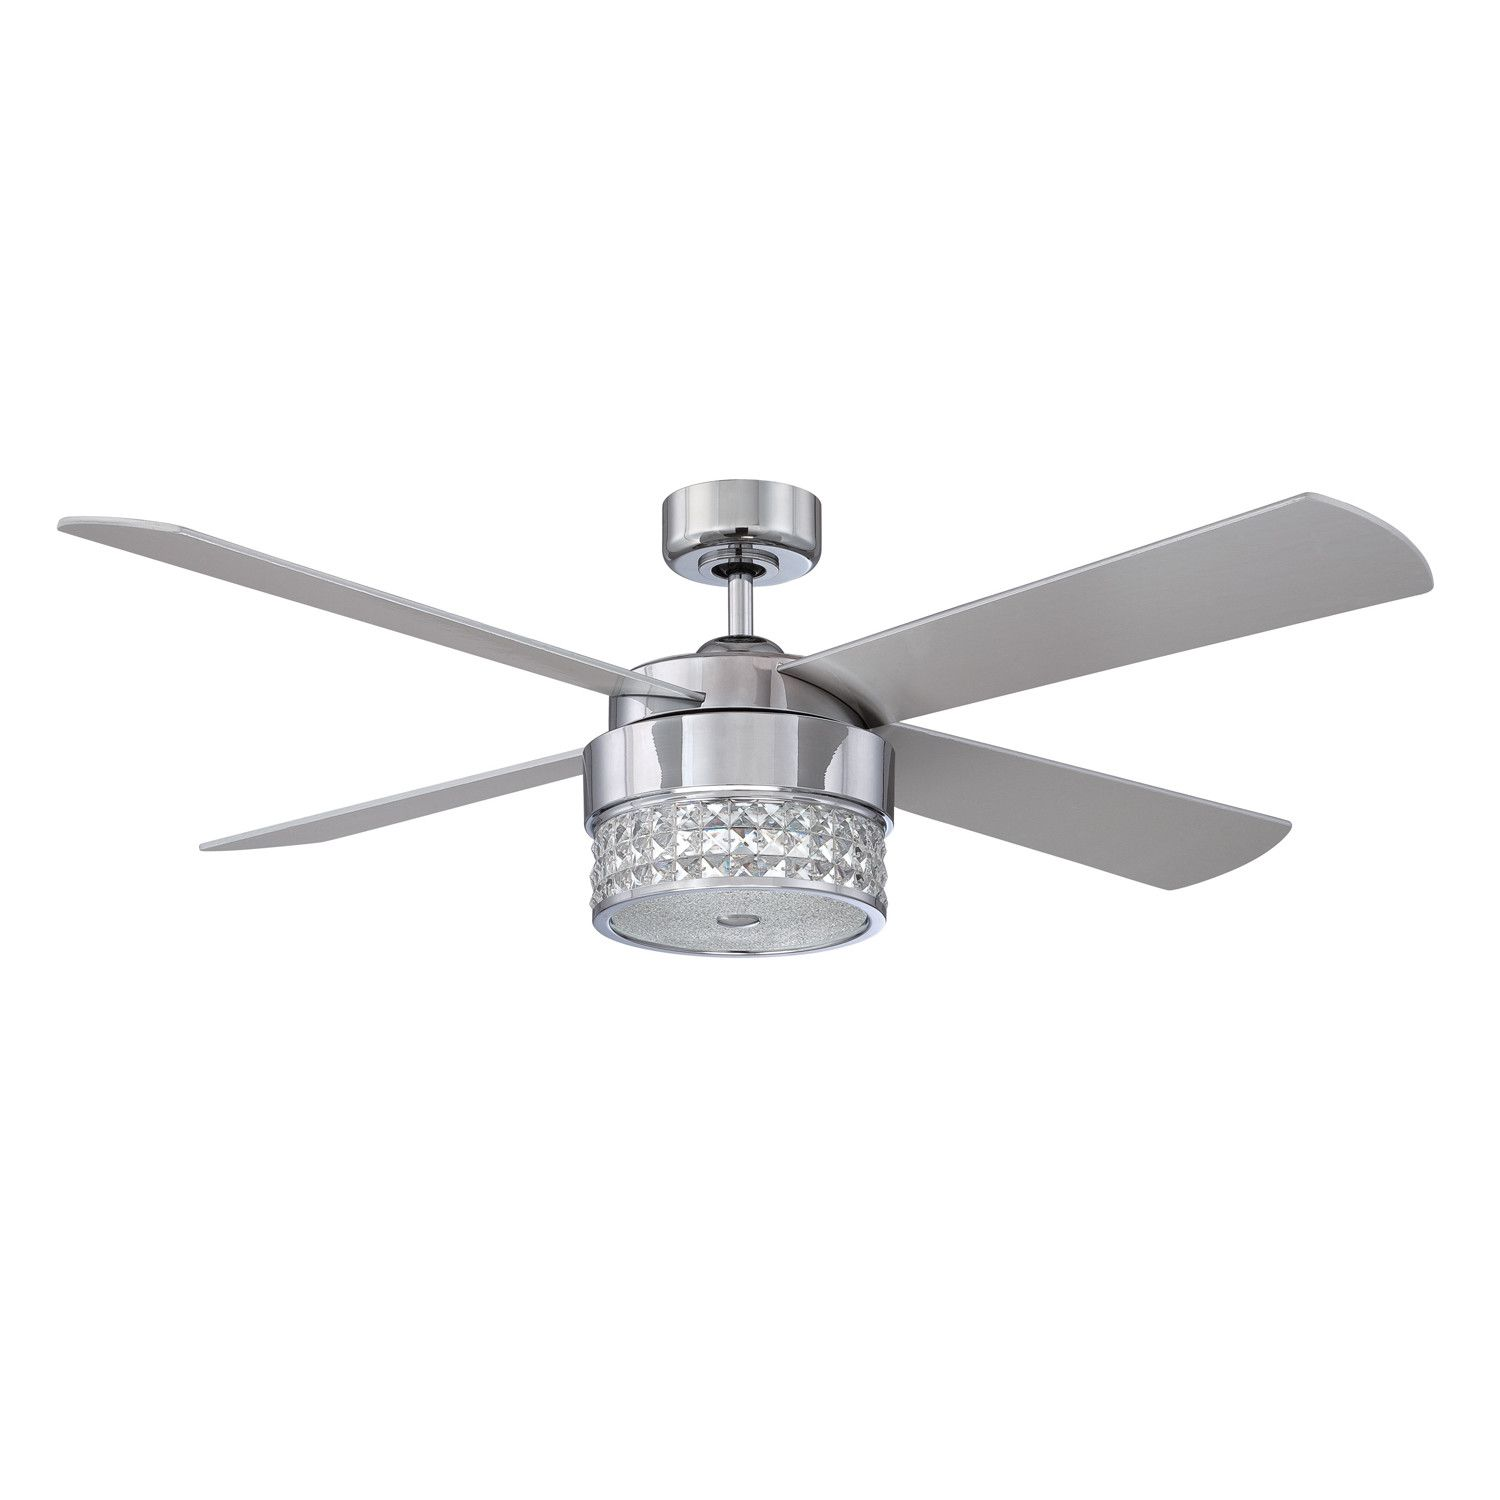 52 Celestra 4 Blade Celling Fan With Wall Remote